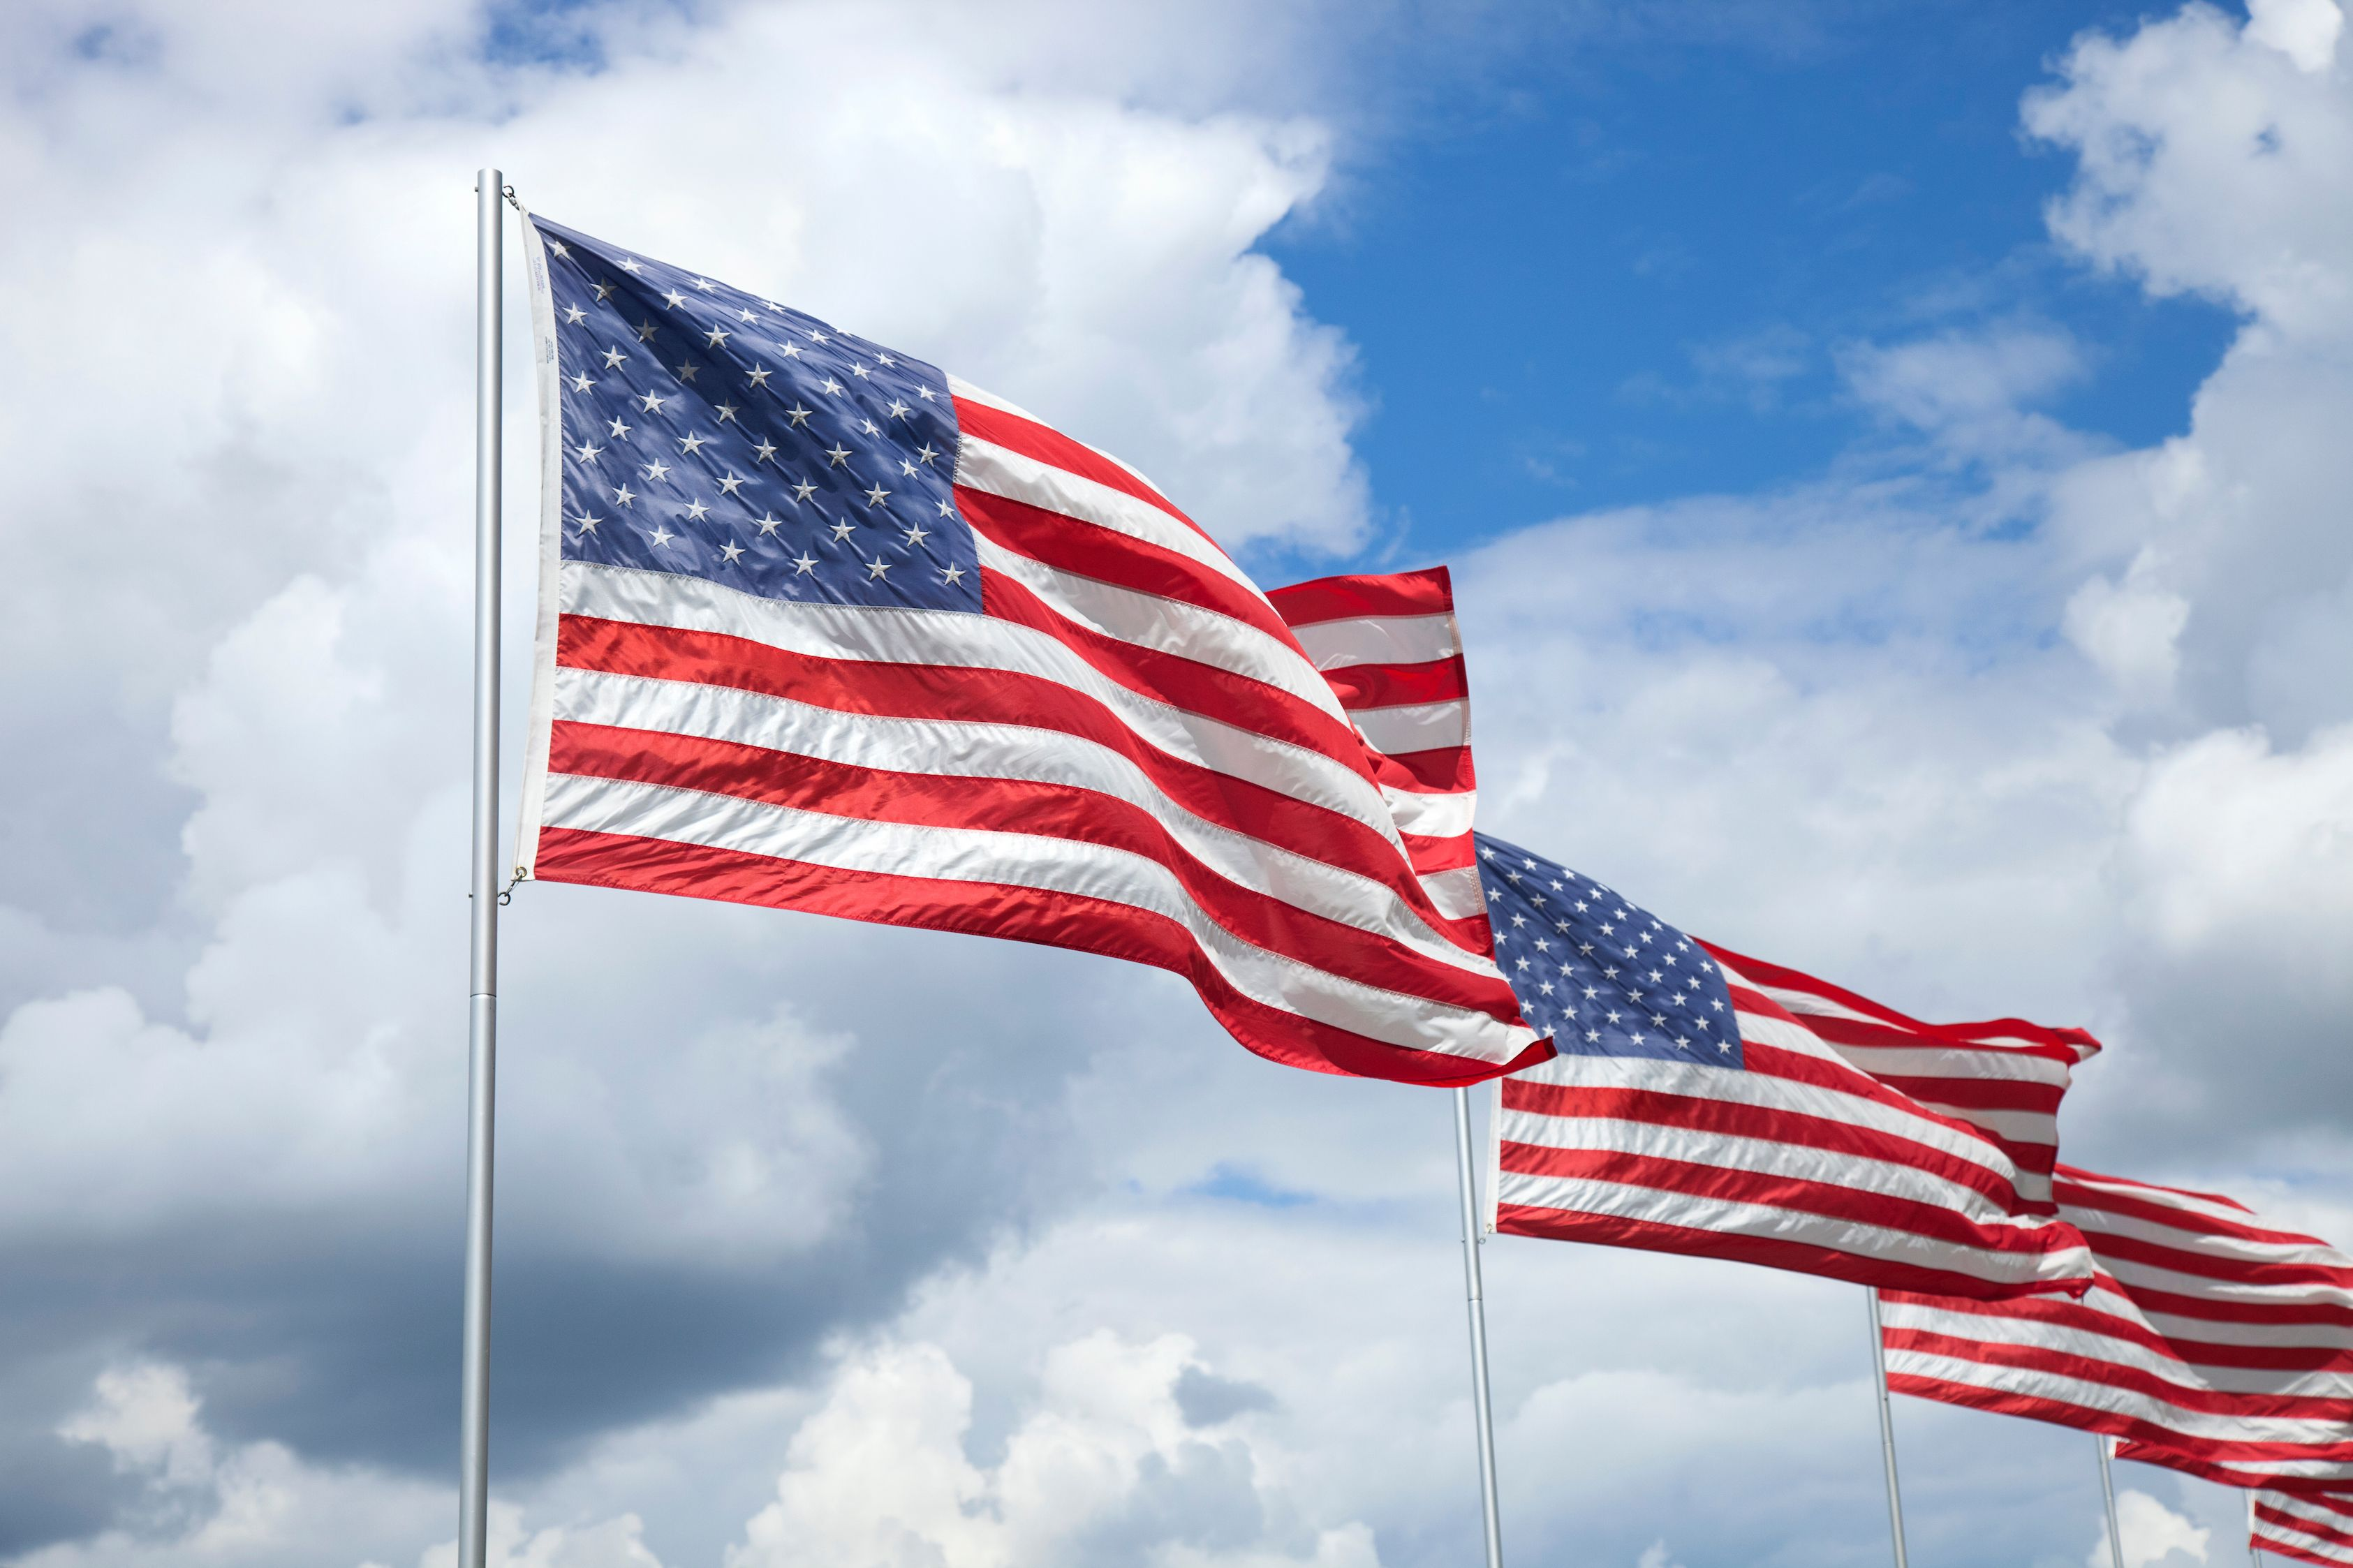 25 Best Memorial Day Quotes 2020 Beautiful Sayings That Honor